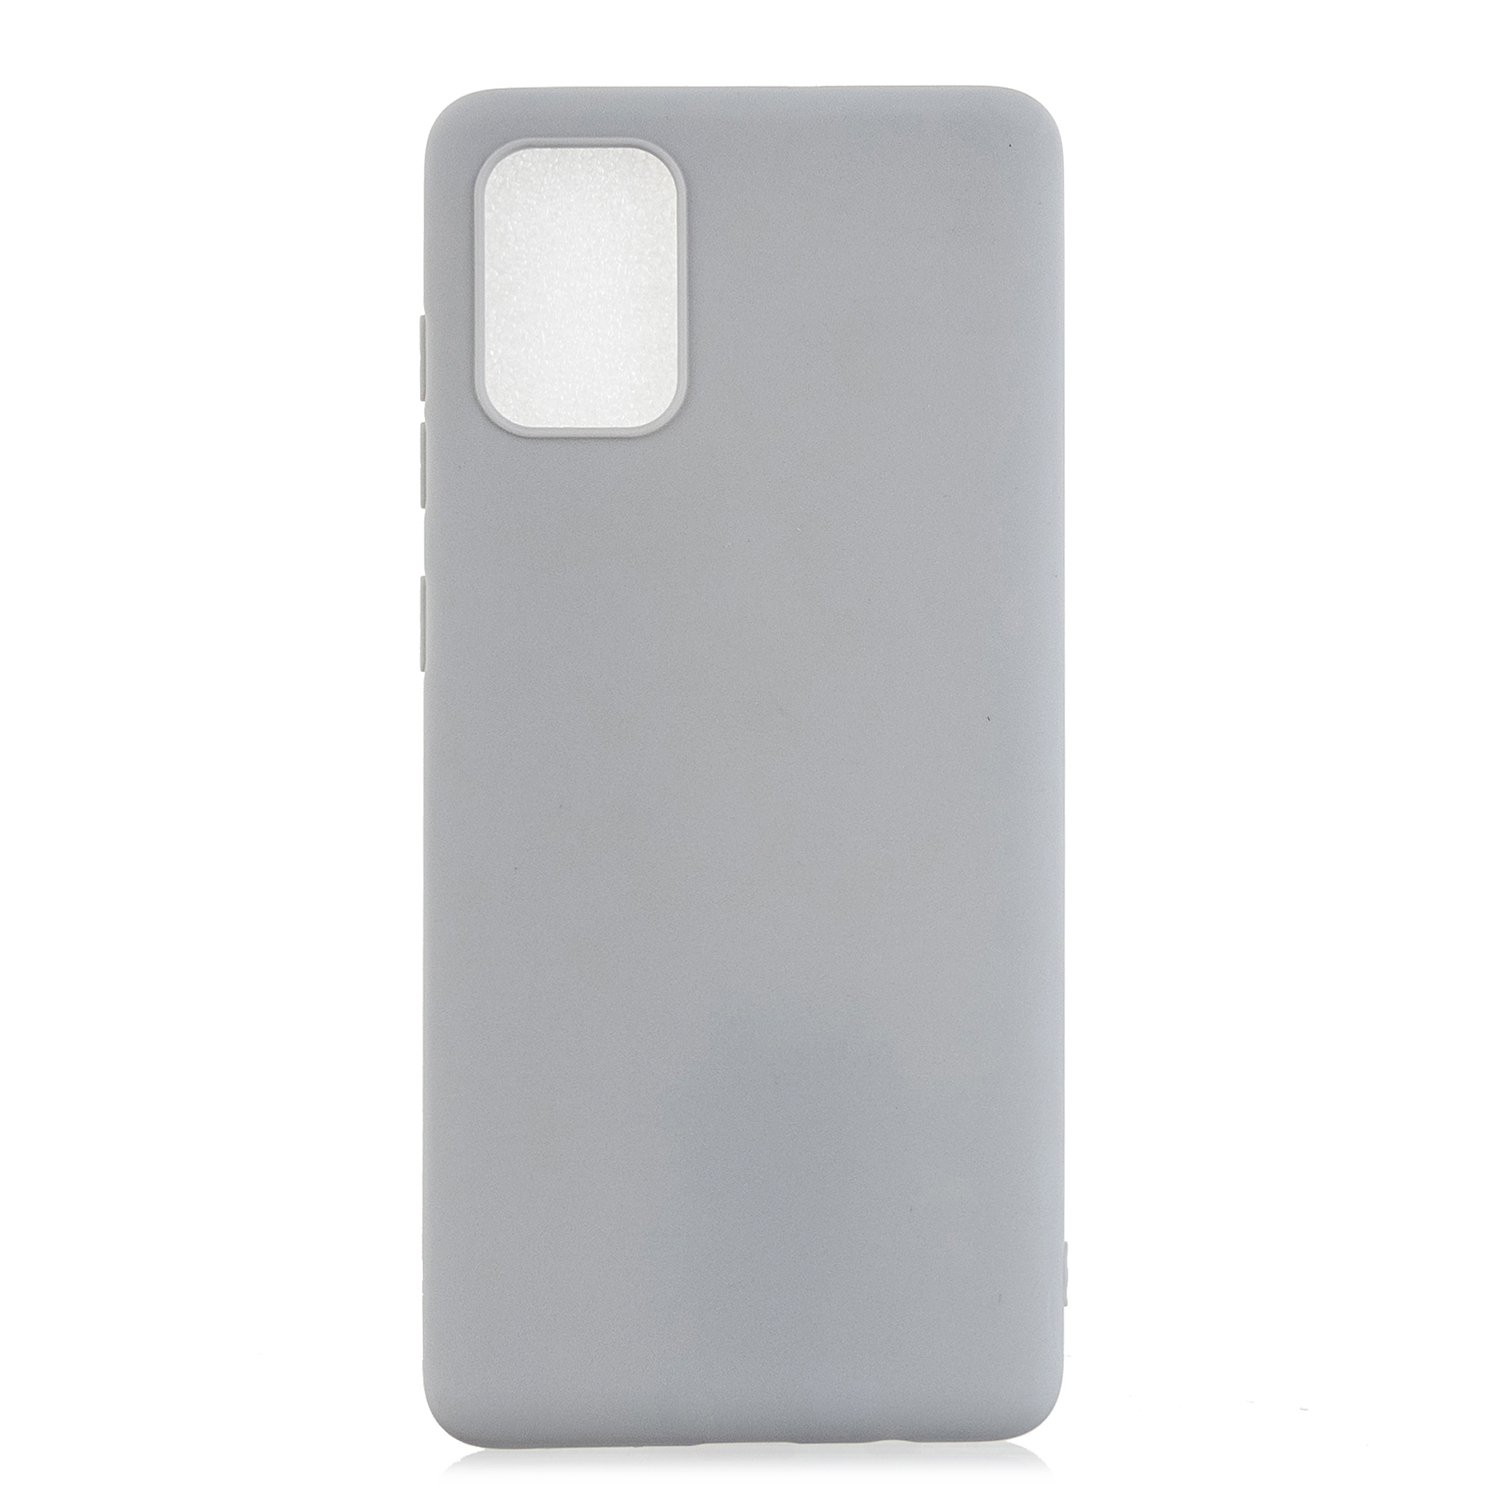 For Samsung A01/ A11/A21/A41/A51/A71/A81/A91 Mobile Phone Case Lovely Candy Color Matte TPU Anti-scratch Non-slip Protective Cover Back Case 12 gray